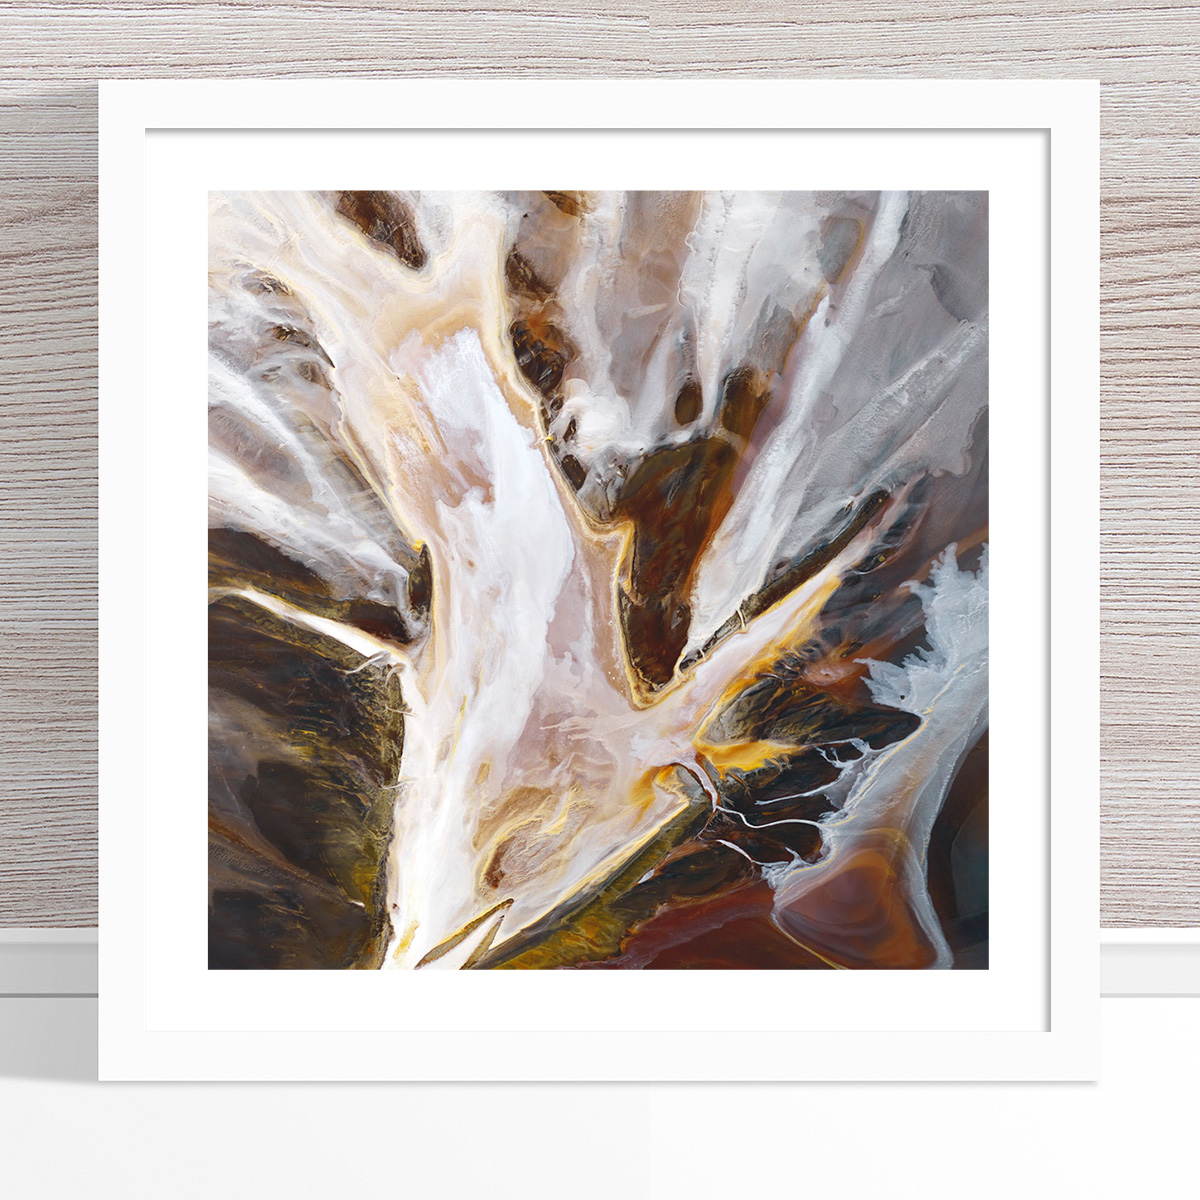 Chris Saunders - 'Aerial Salt 014' White Frame